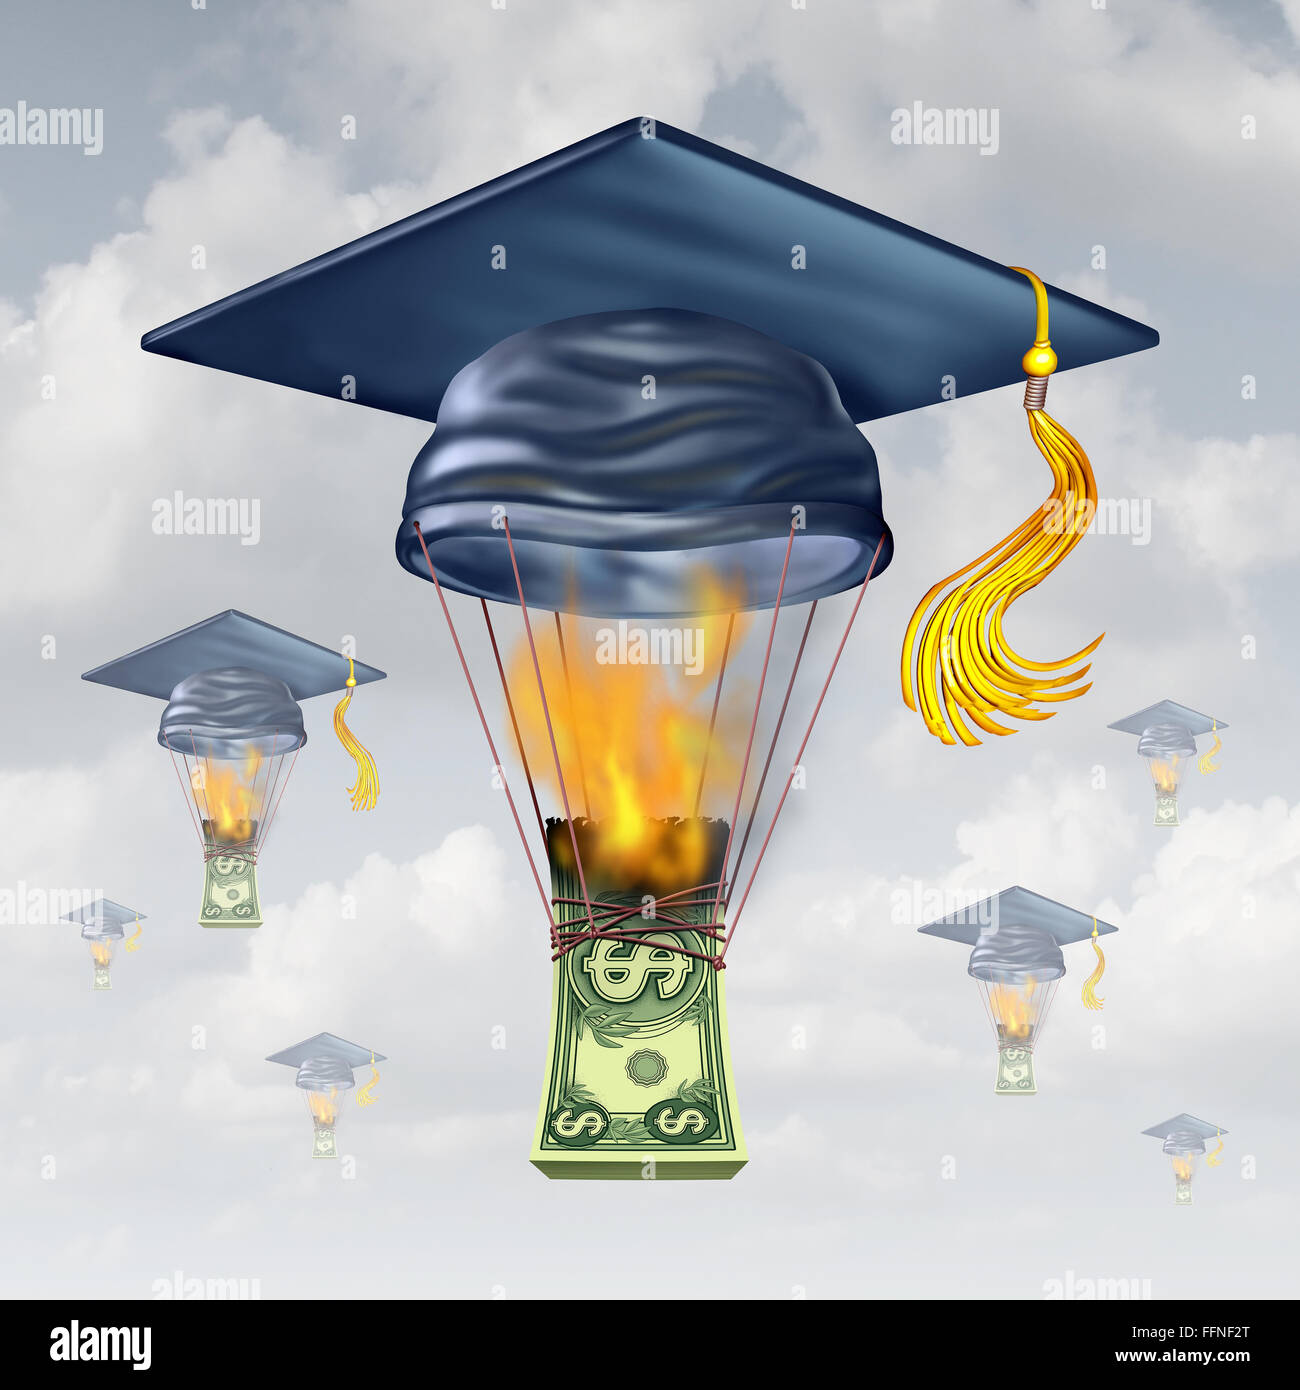 Education cost and high school fees as a graduation hat shaped as a hot air balloon being lifted up by the flames - Stock Image